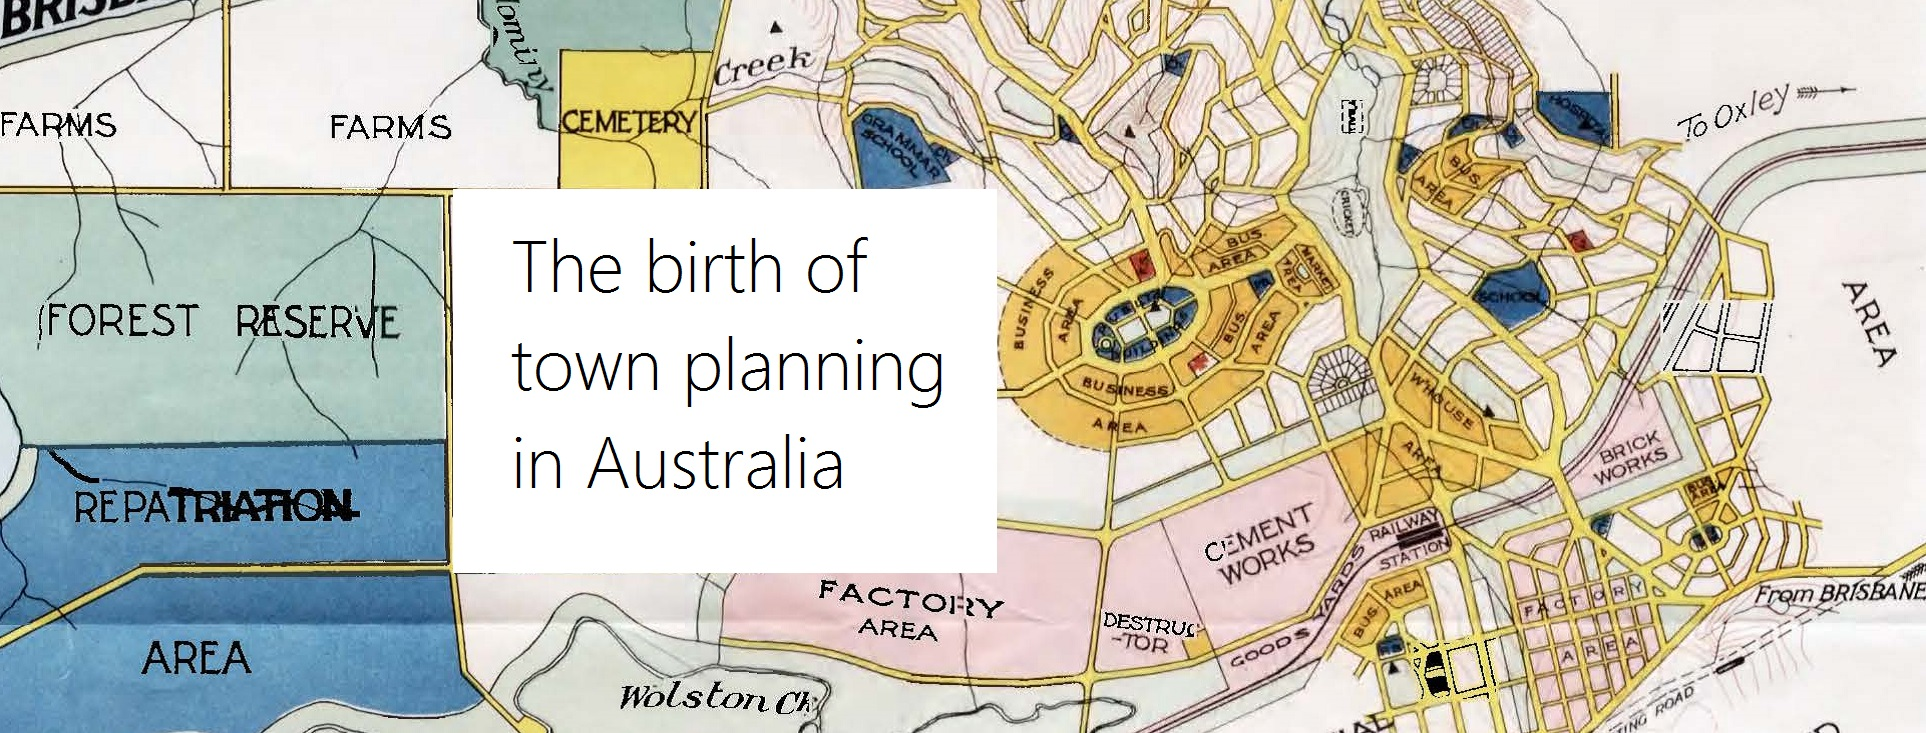 The birth of town planning in Australia